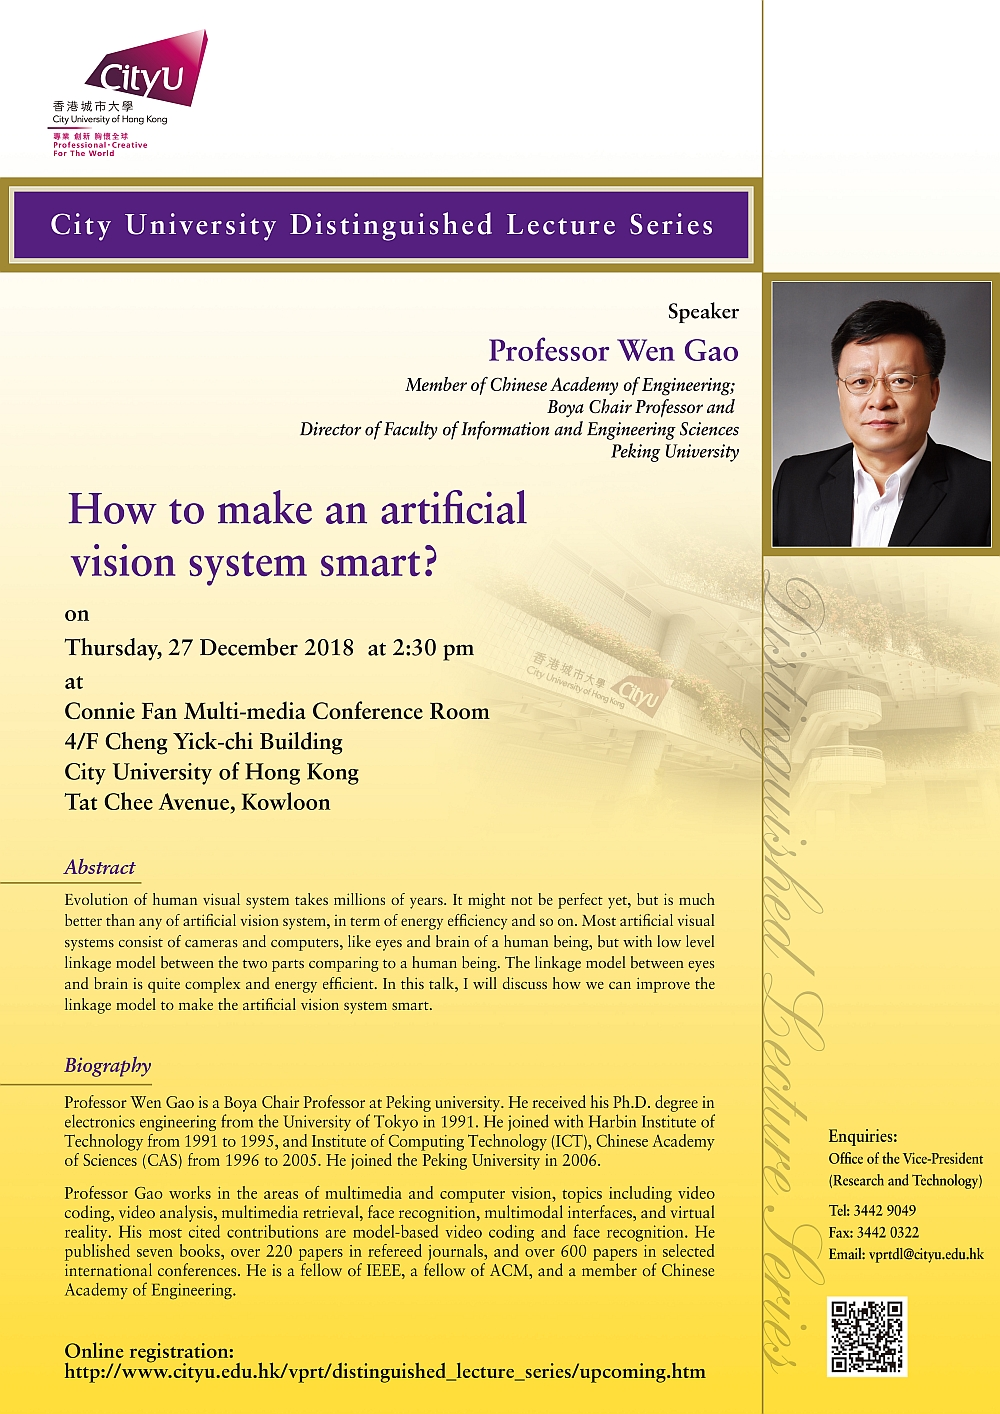 CityU Distinguished Lecture Series Title: How to make an artificial vision system smart? by Professor Wen Gao Date: 27 December 20189 (Thursday) Time: 2:15 pm – 2:30 pm (Tea reception); 2:30 pm – 4:00 pm (Lecture) Venue: Connie Fan Multi-media Conference Room, 4/F Cheng Yick-chi Building